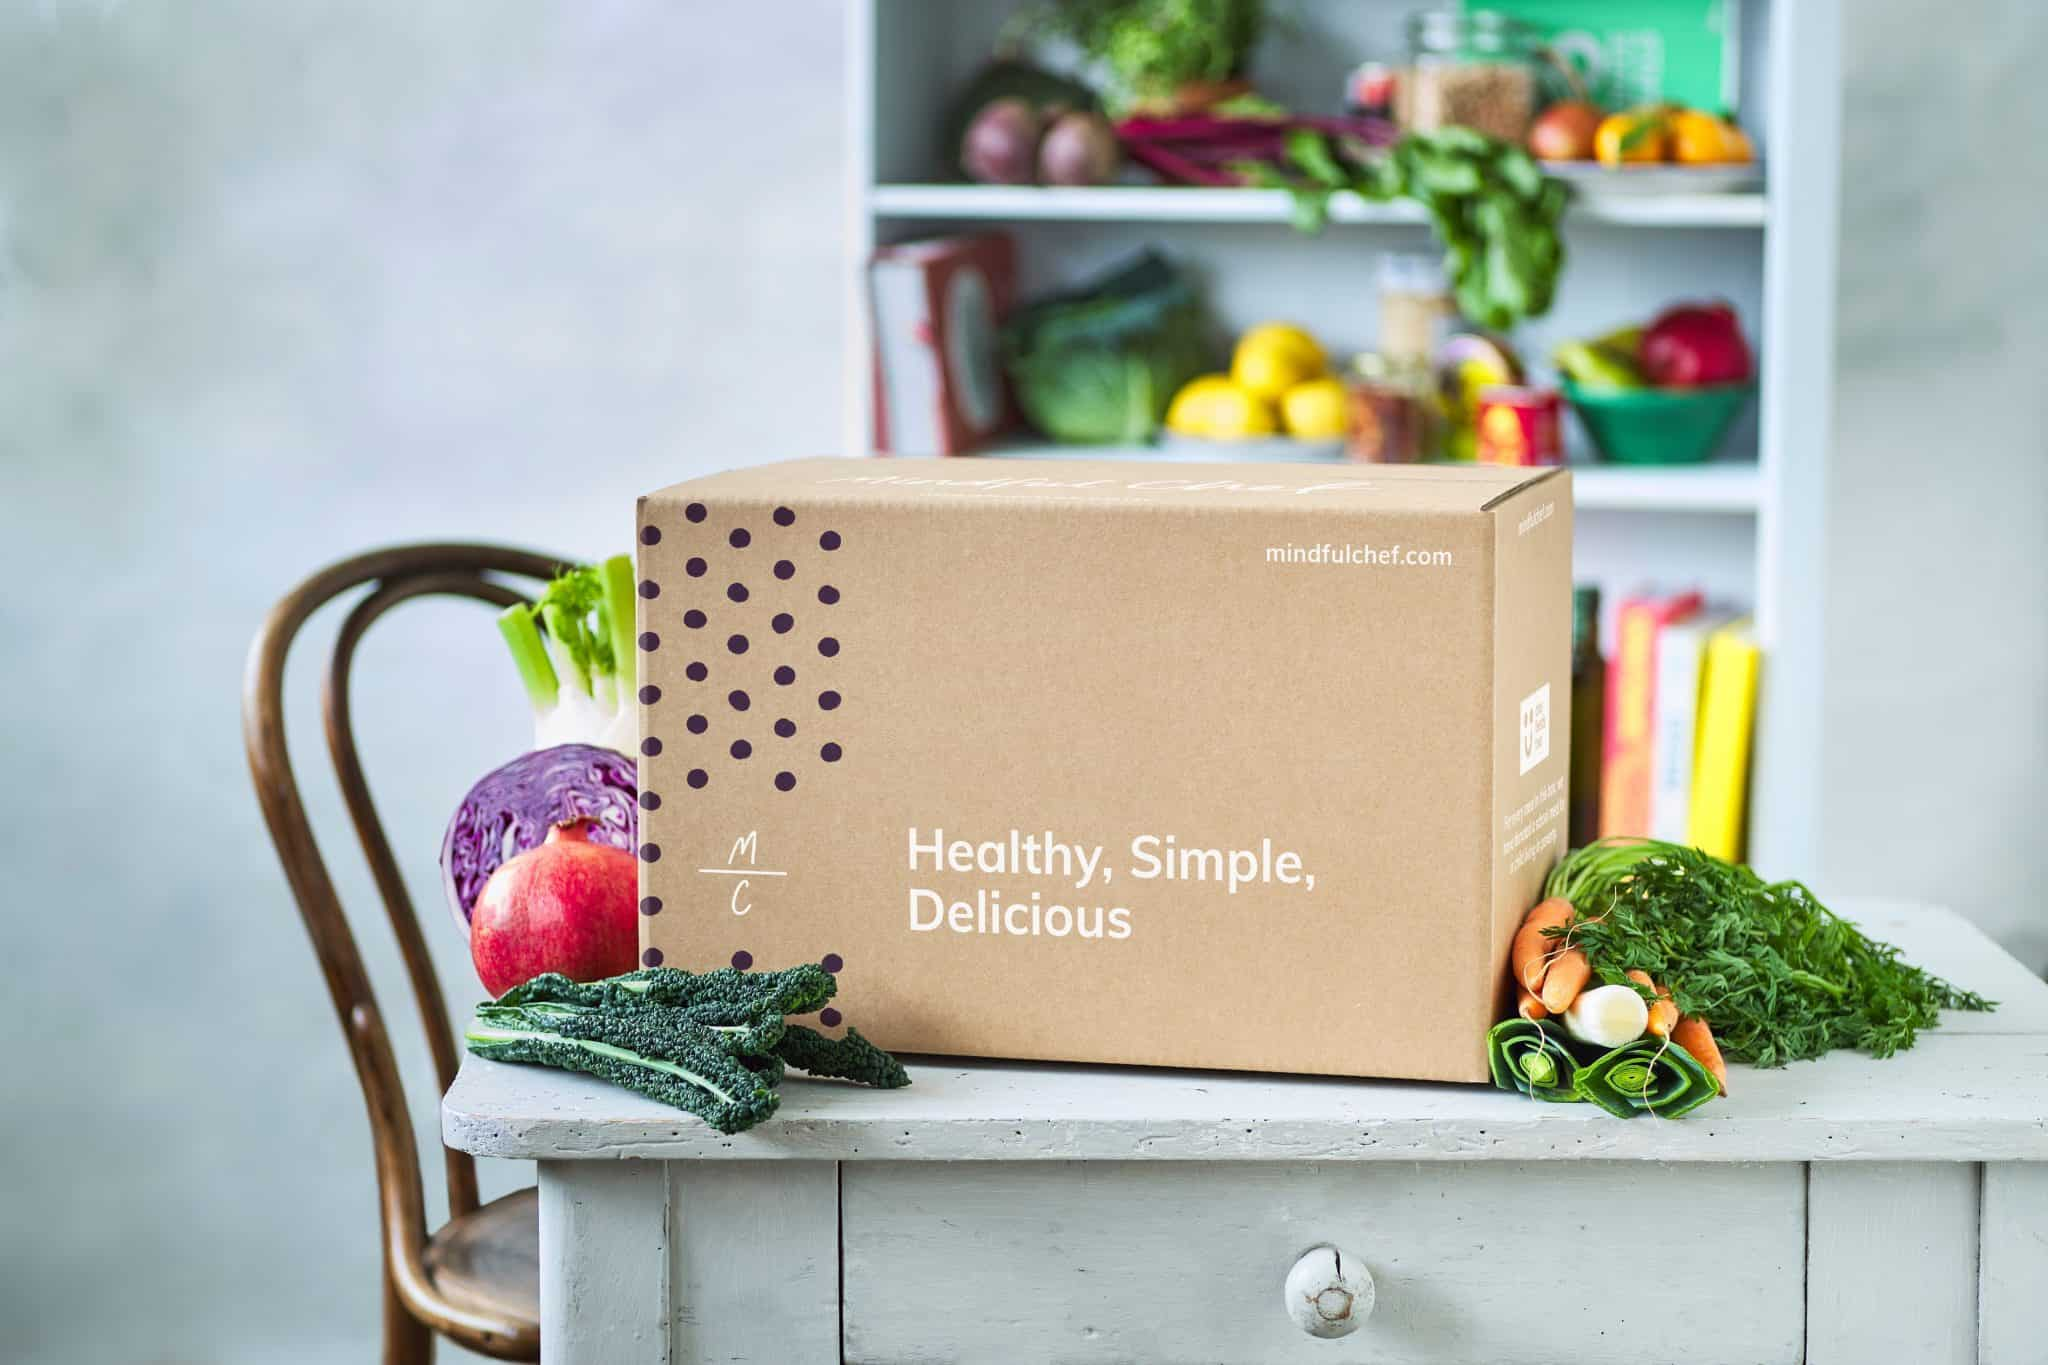 Mindful Chef produce delivery